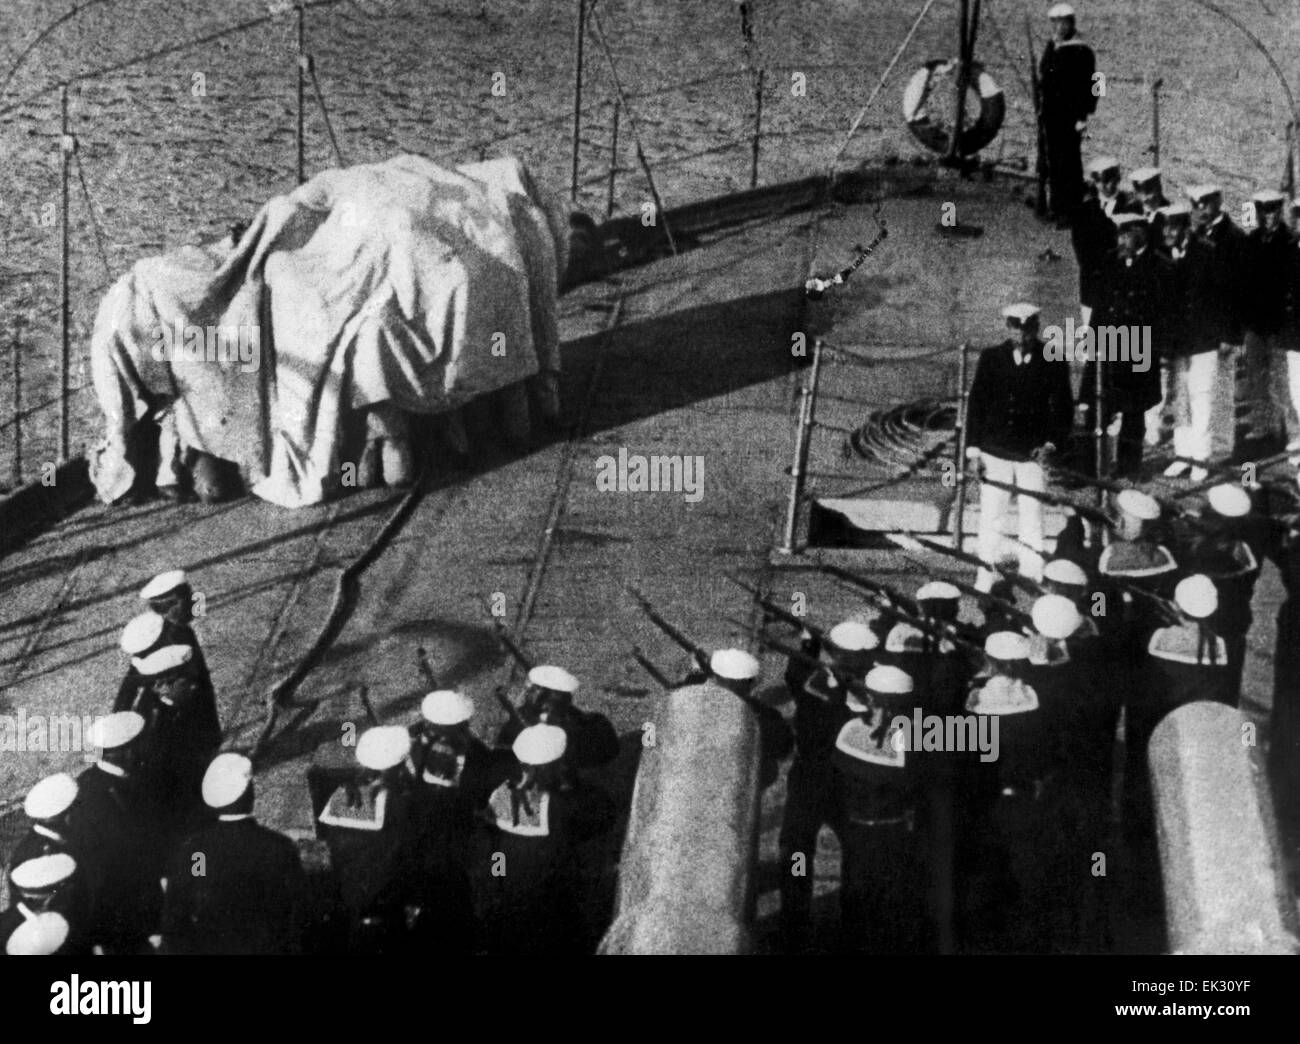 an analysis of the film battleship potemkin The crowds in battleship potemkin aren't just gatherings of people or flimsy socialist symbols, they're living things, engaged in continuous progressions of growth and movement sergei.